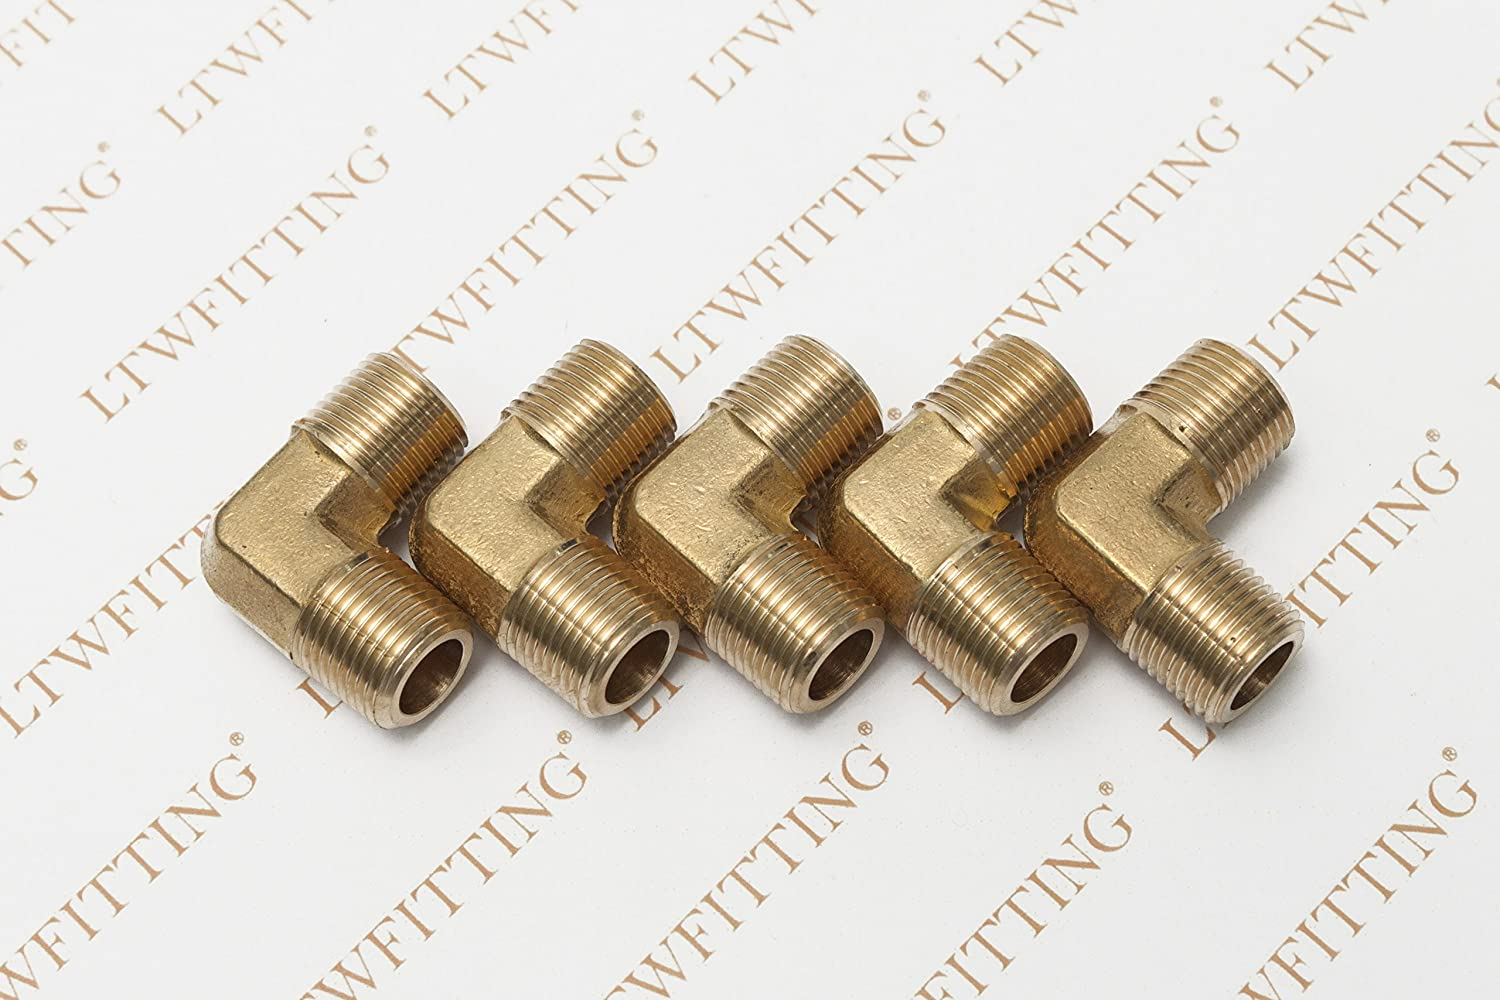 LTWFITTING Brass Pipe Male 90 Deg Elbow Fitting 1//4-Inch NPT Water Fuel Pack of 5